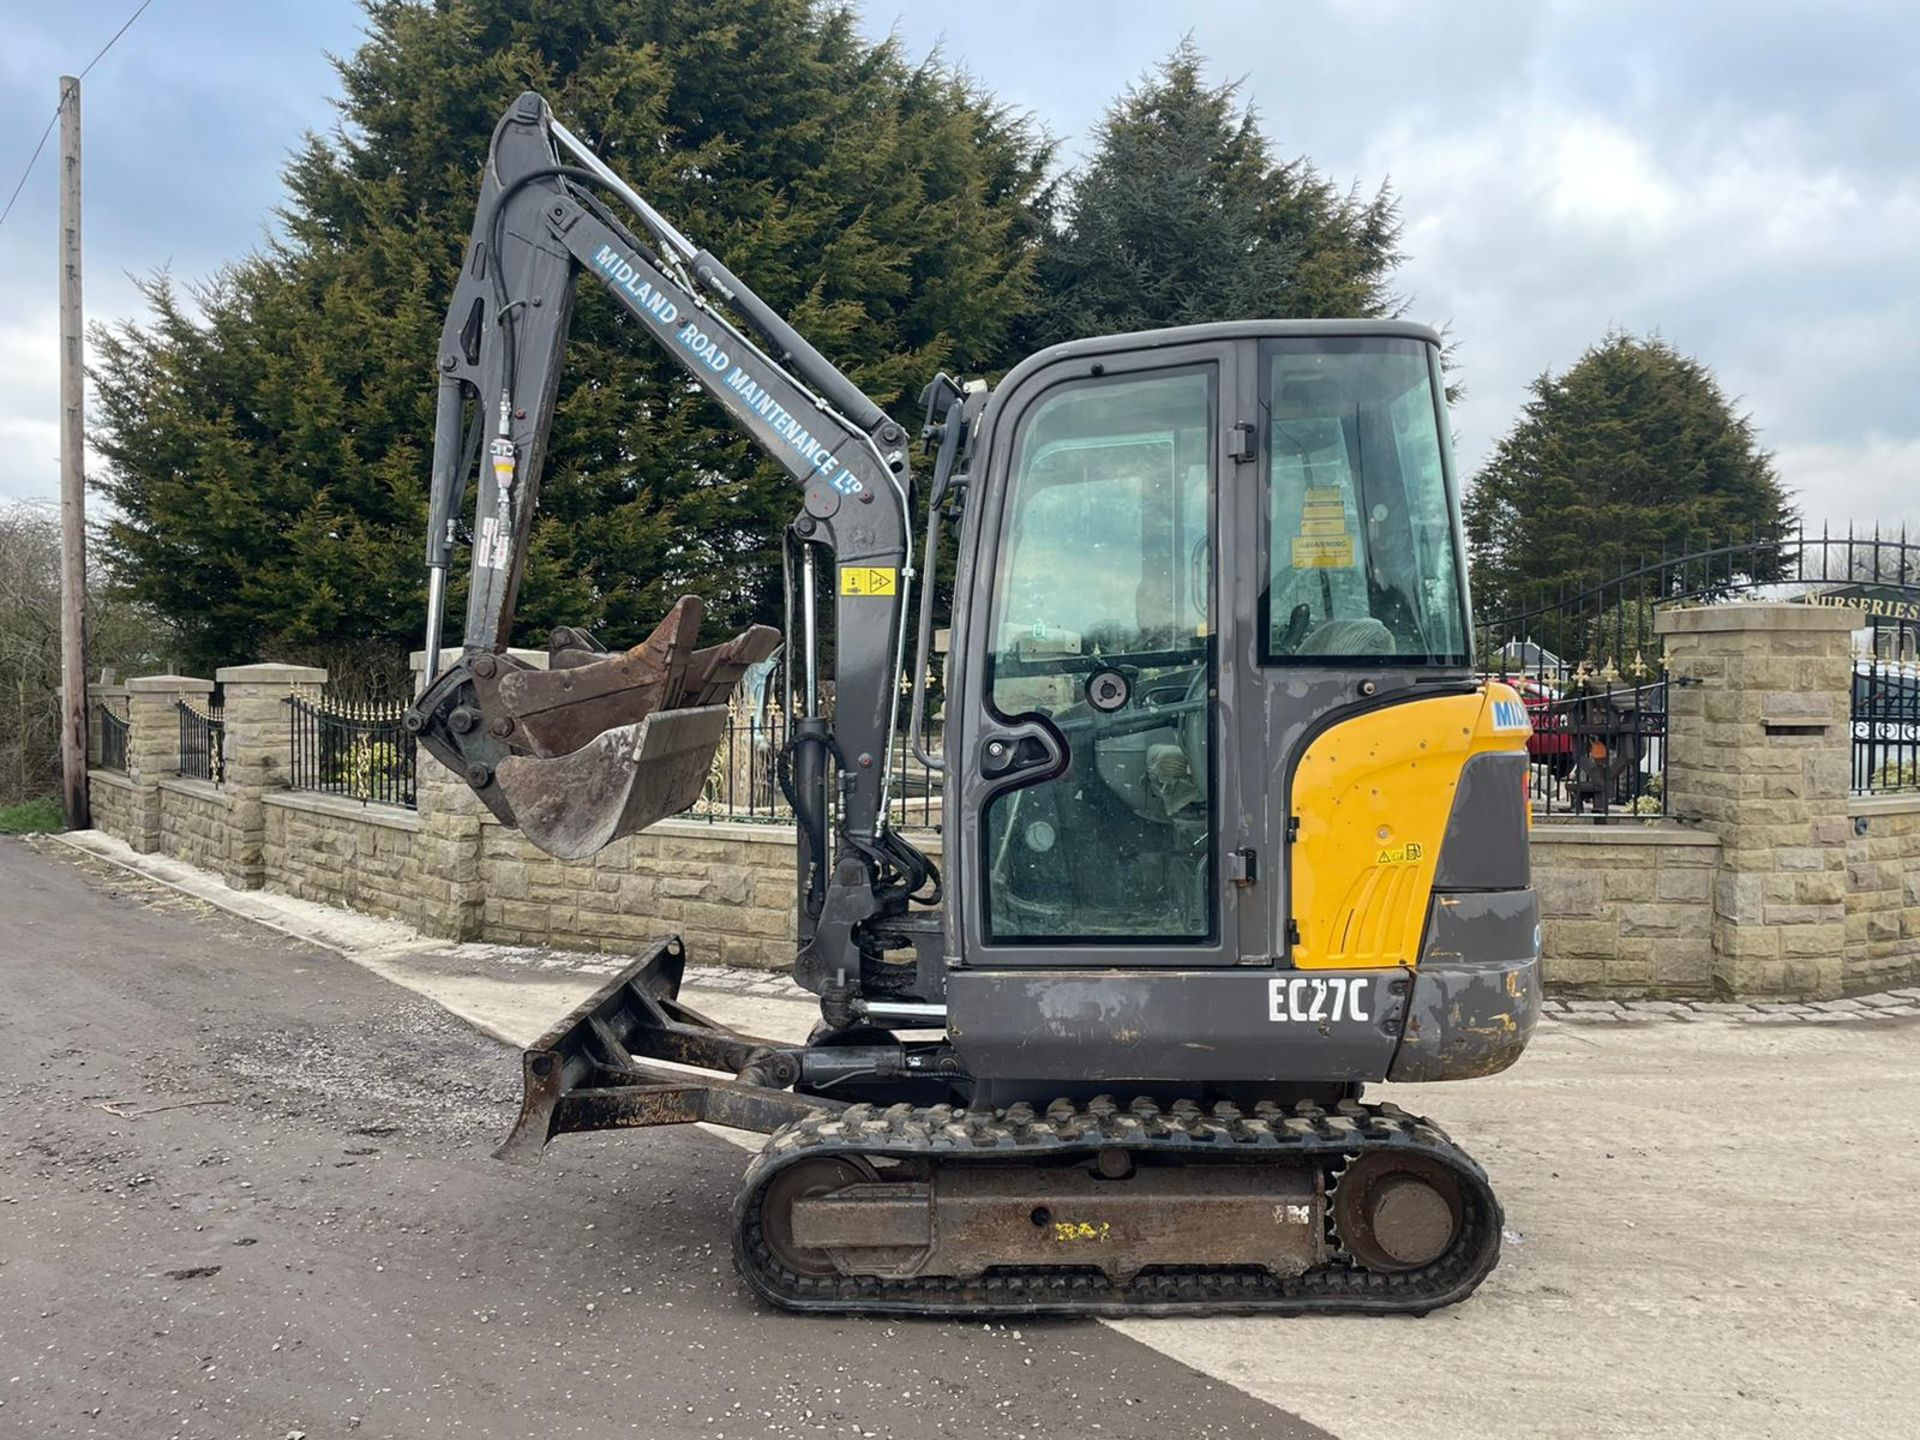 2013 VOLVO EC27C EXCAVATOR RUNS, DRIVES AND DIGS, X3 BUCKETS INCLUDED - Image 4 of 8